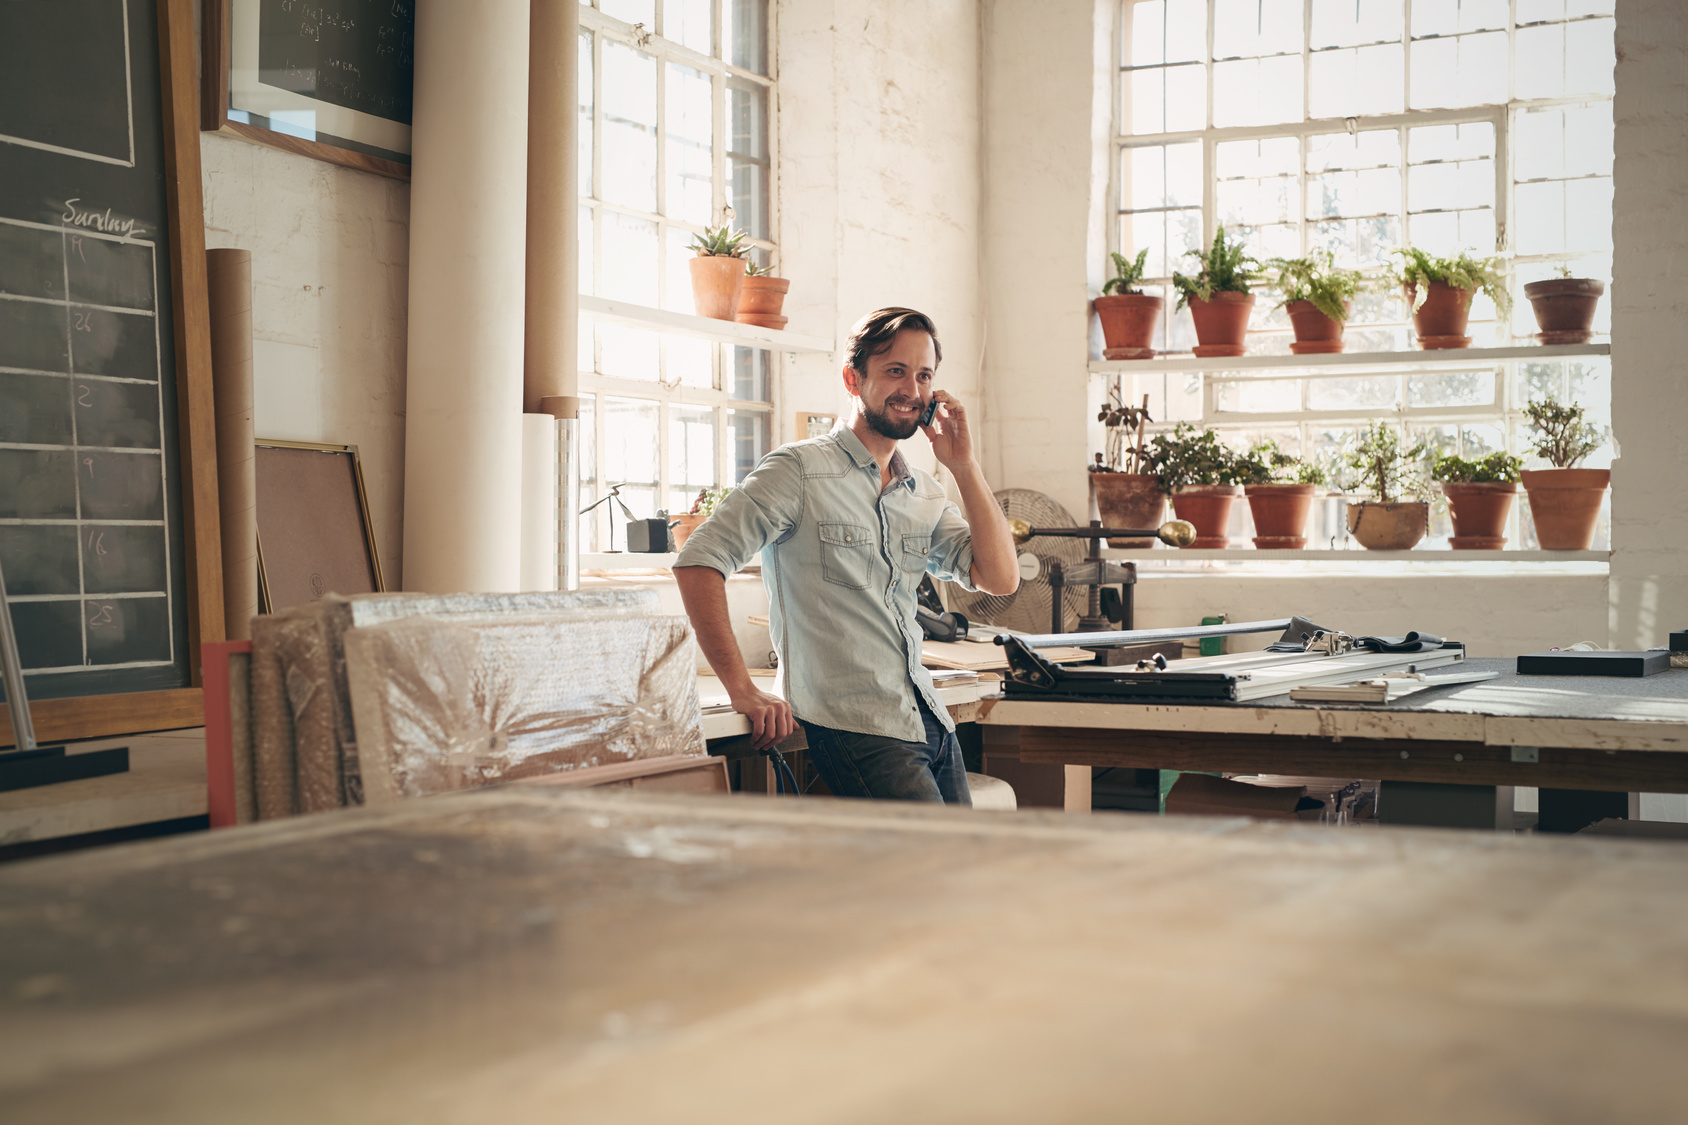 Handsome craftsman standing casually in his workshop studio talking on his phone with a positive expression